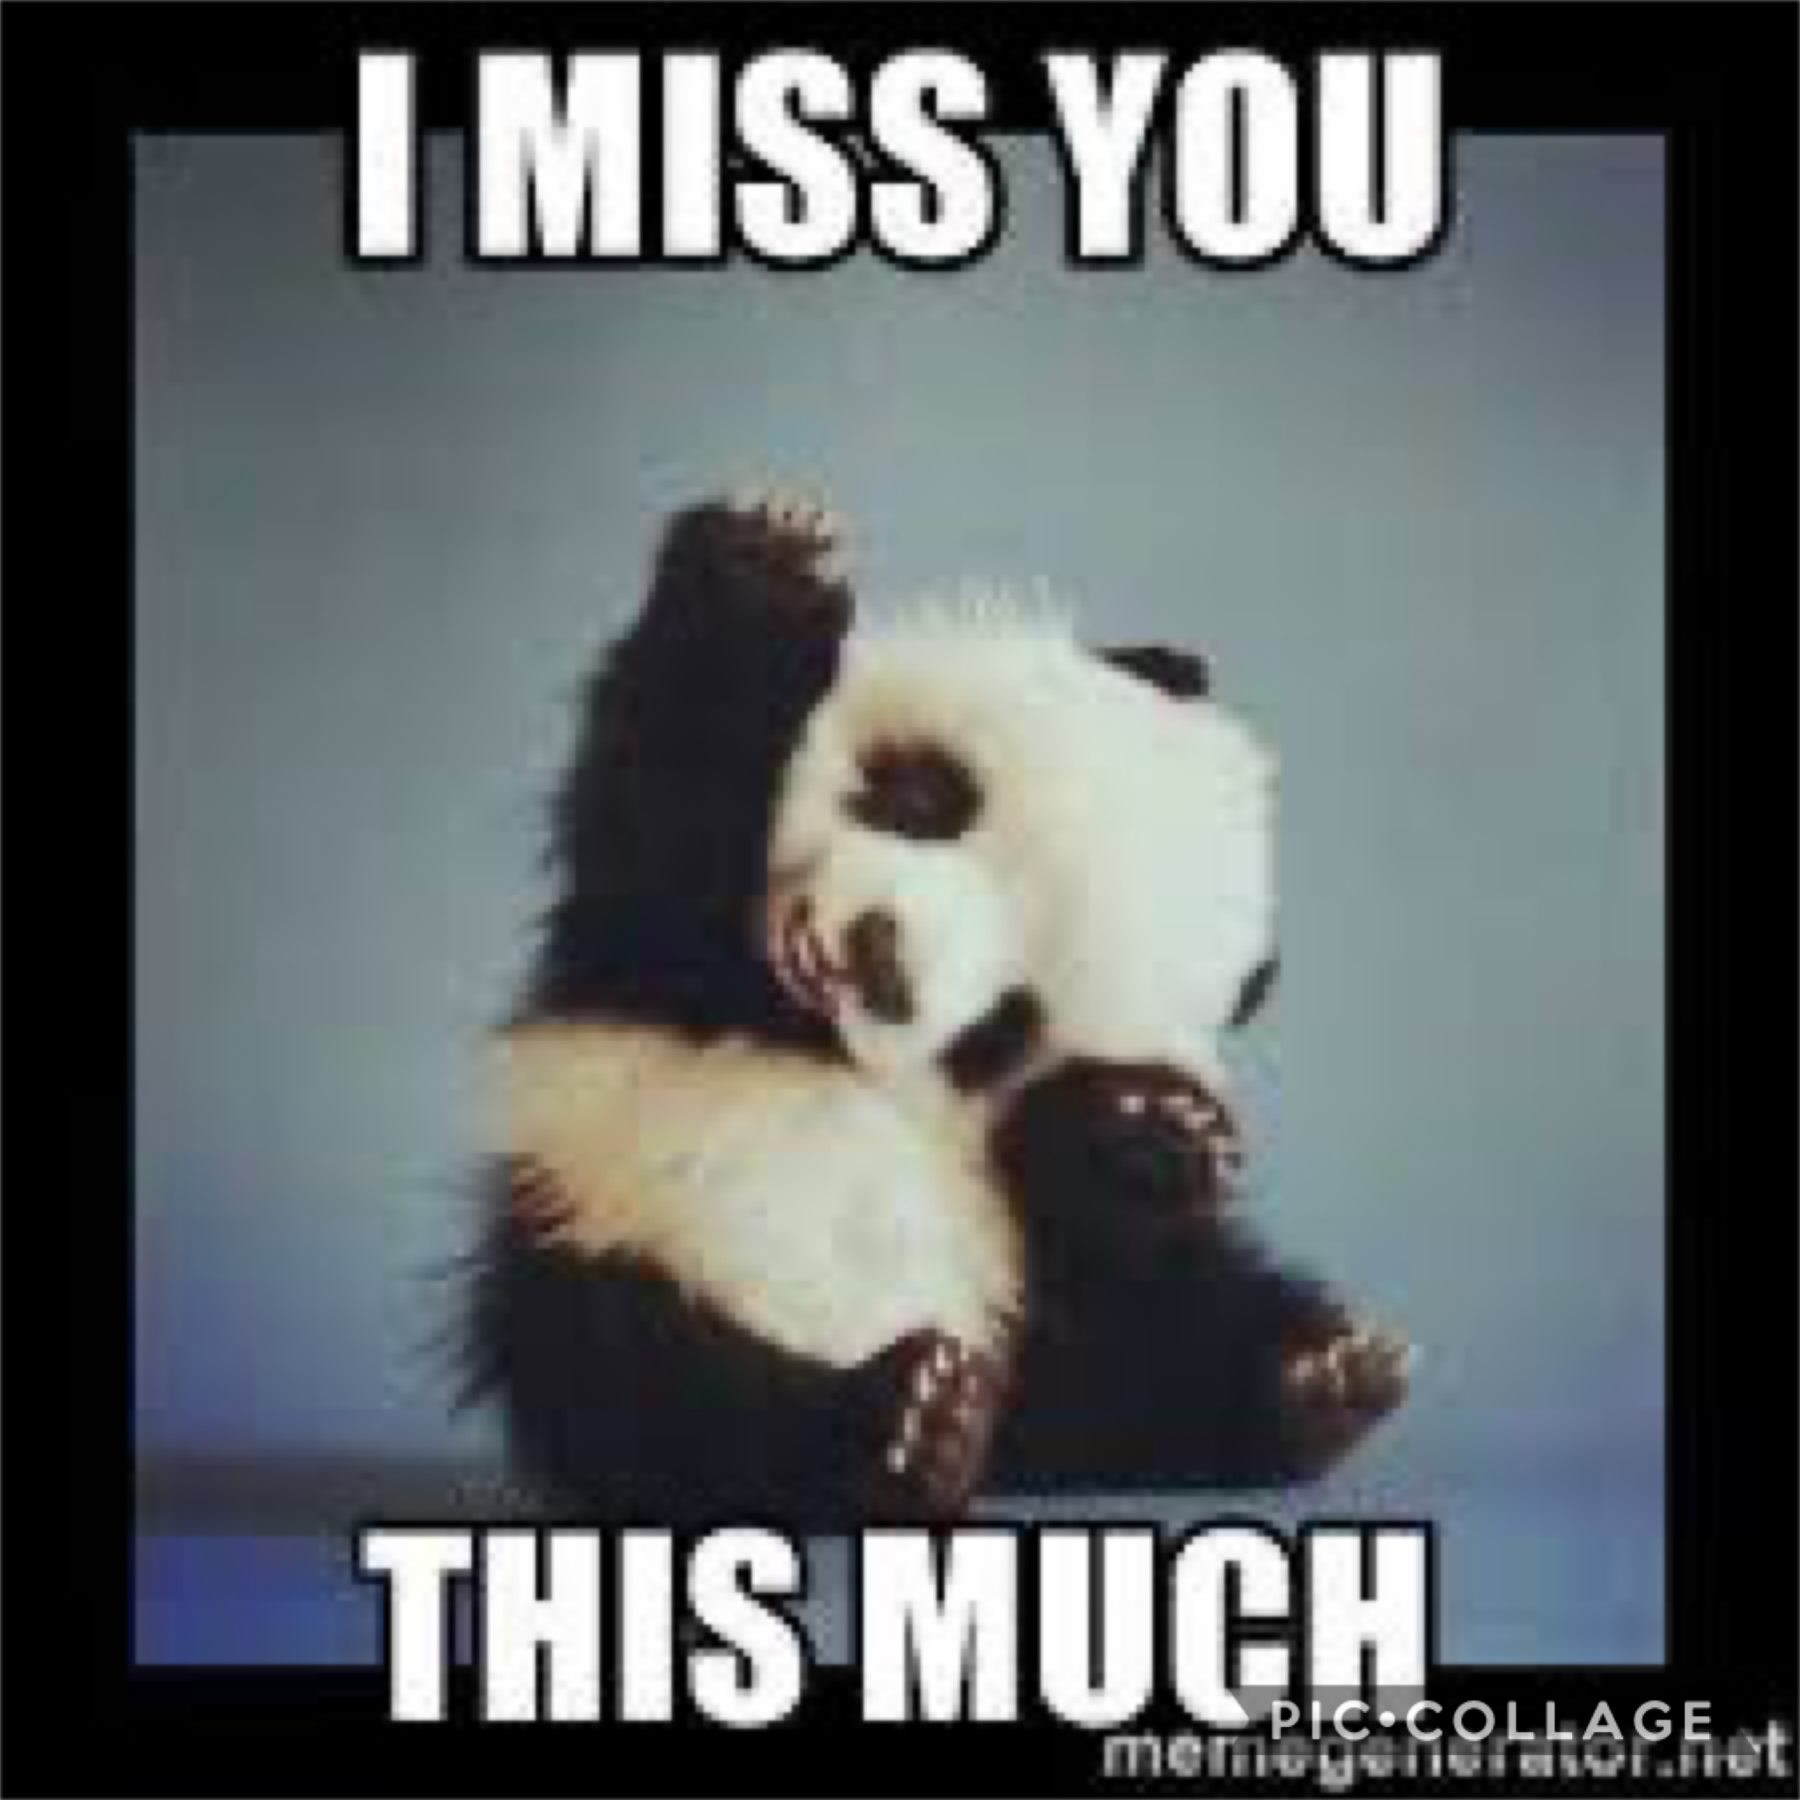 That's how much I miss you guys